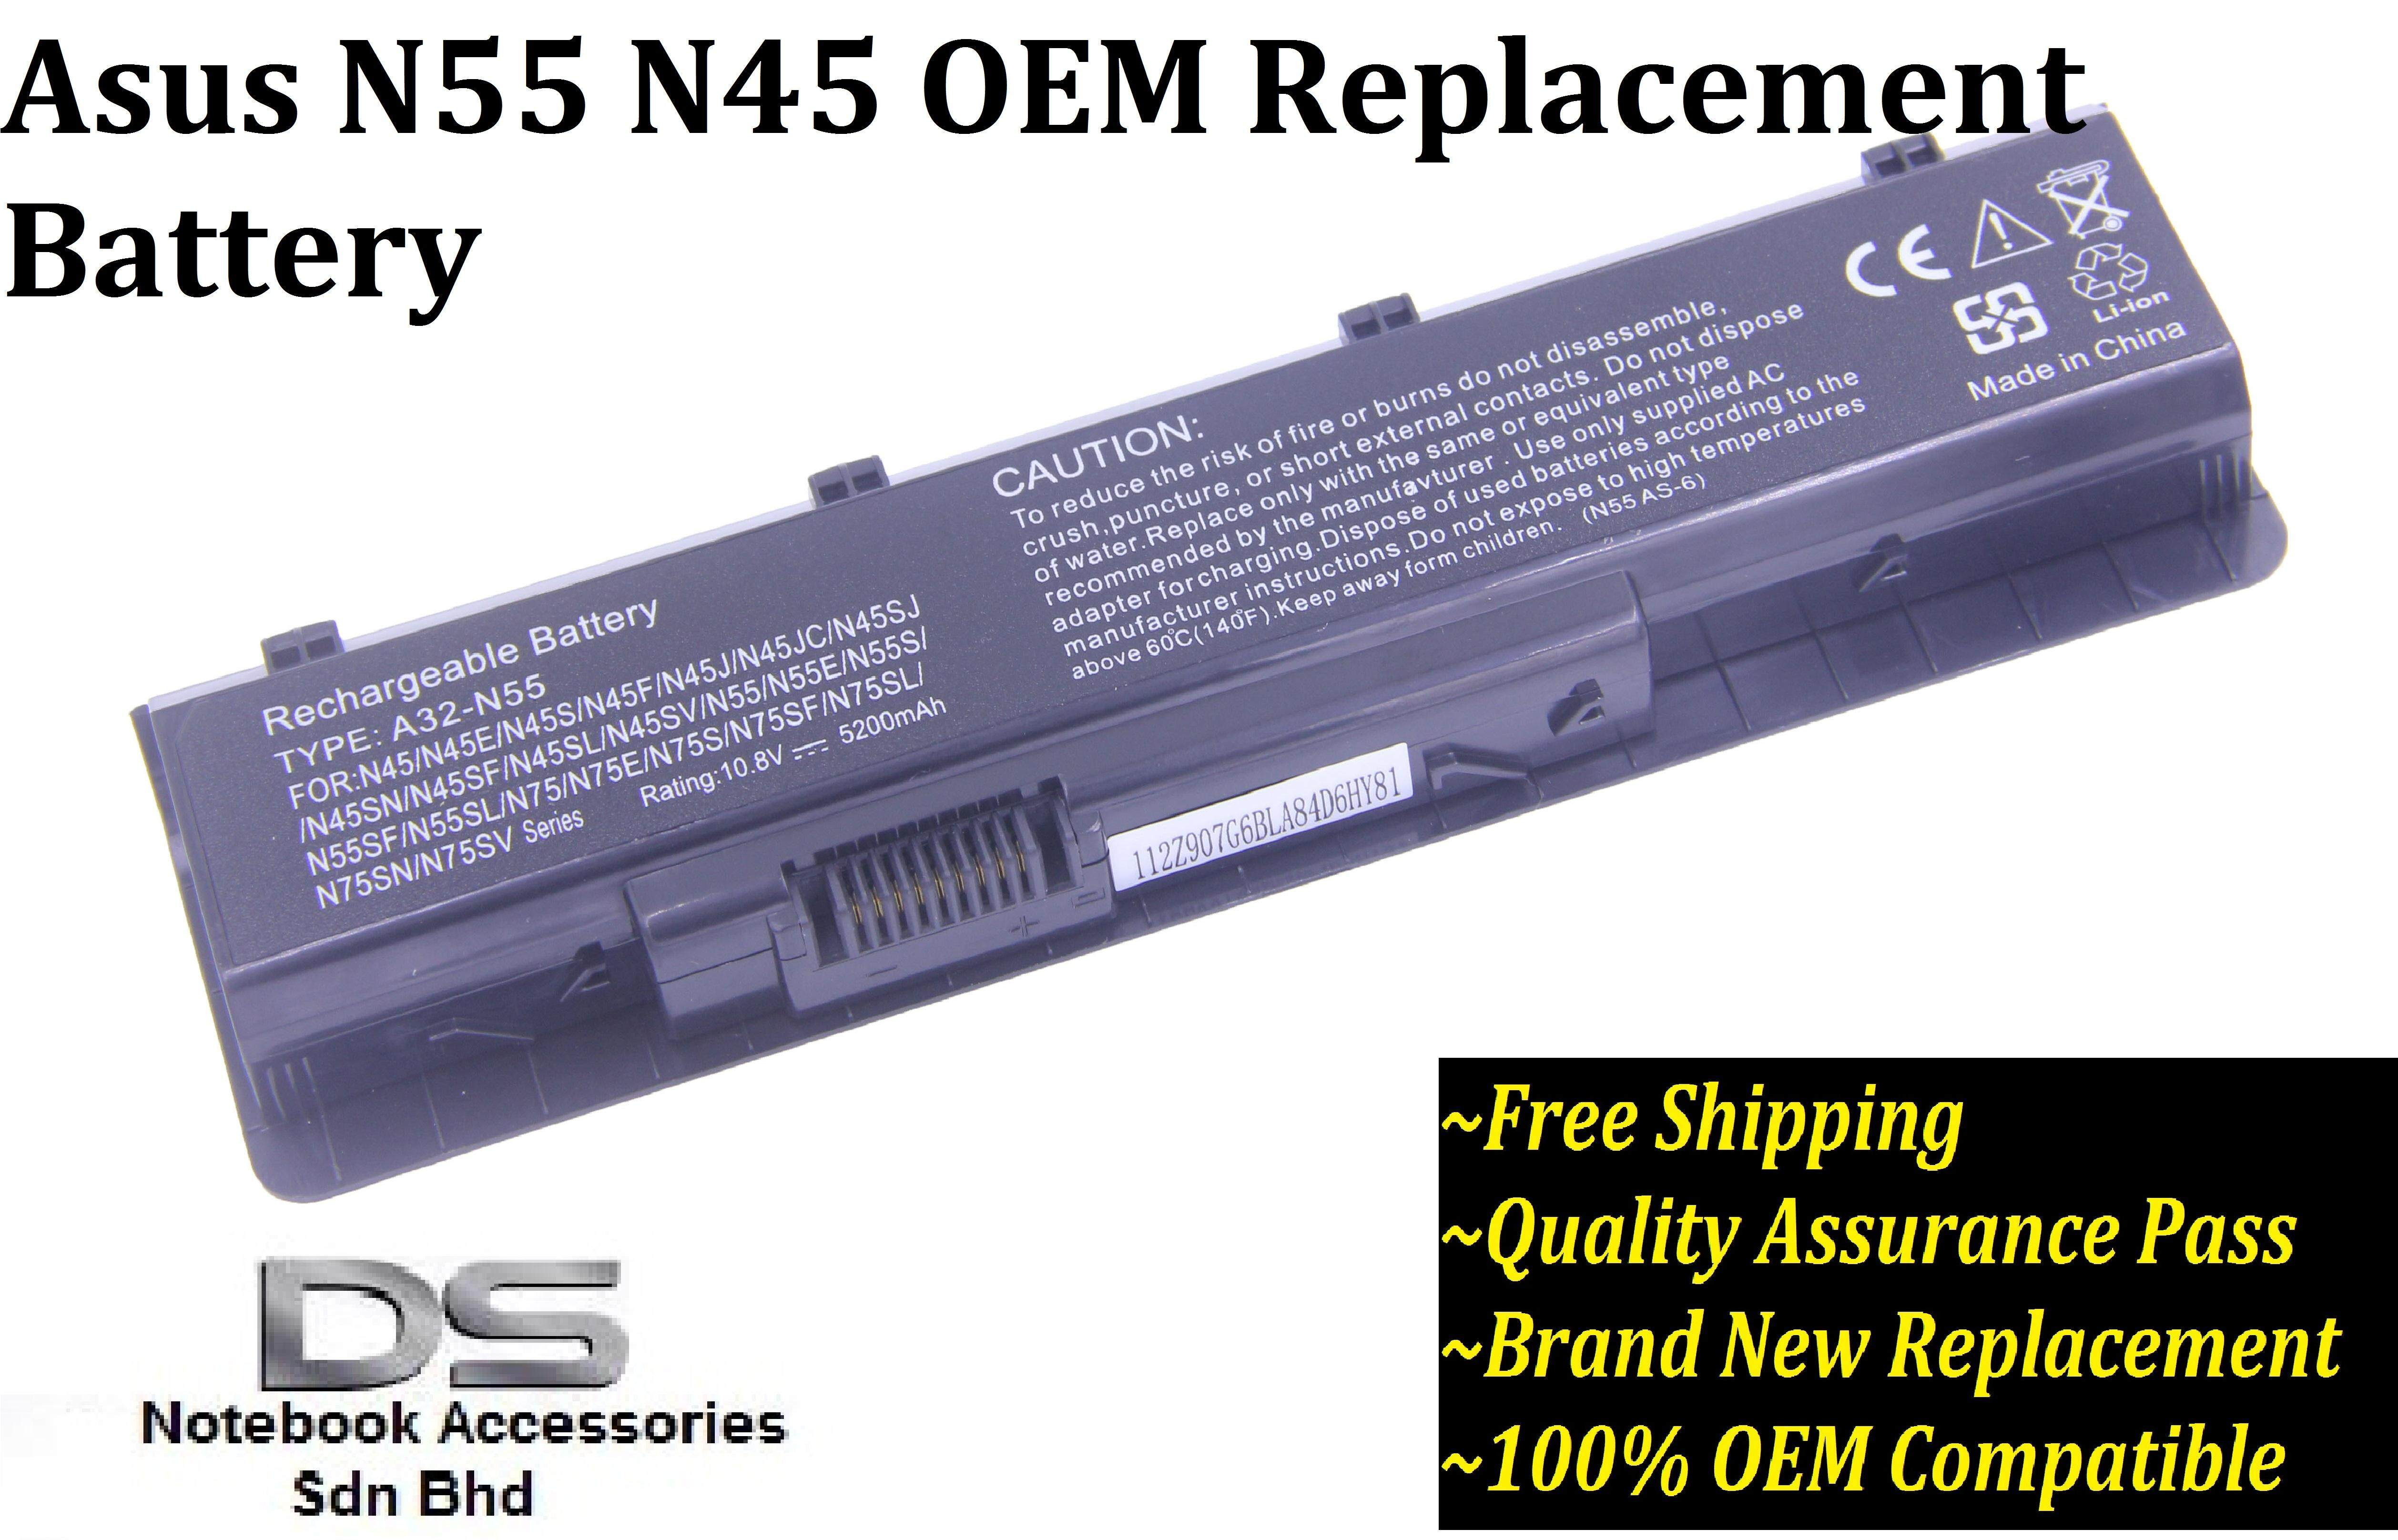 Asus N45SL Battery /Asus N45 battery Malaysia